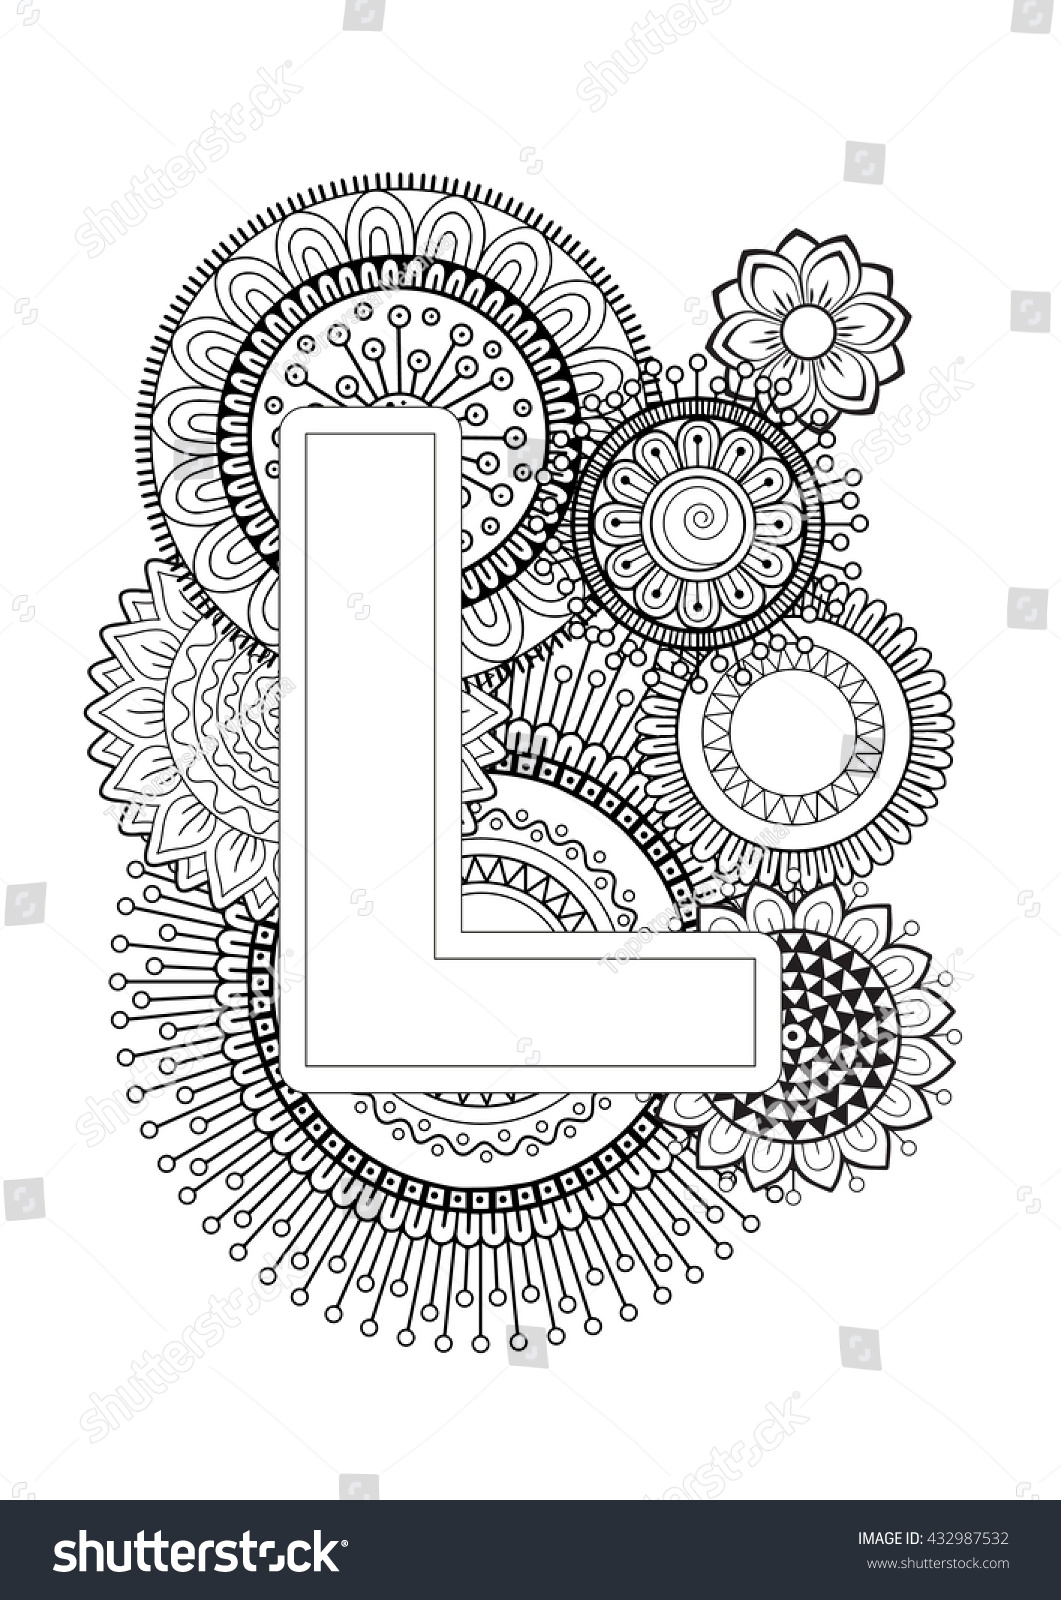 Coloring pictures for adults letters - Doodle Floral Letters Coloring Book For Adult Mandala And Sunflower Abc Book